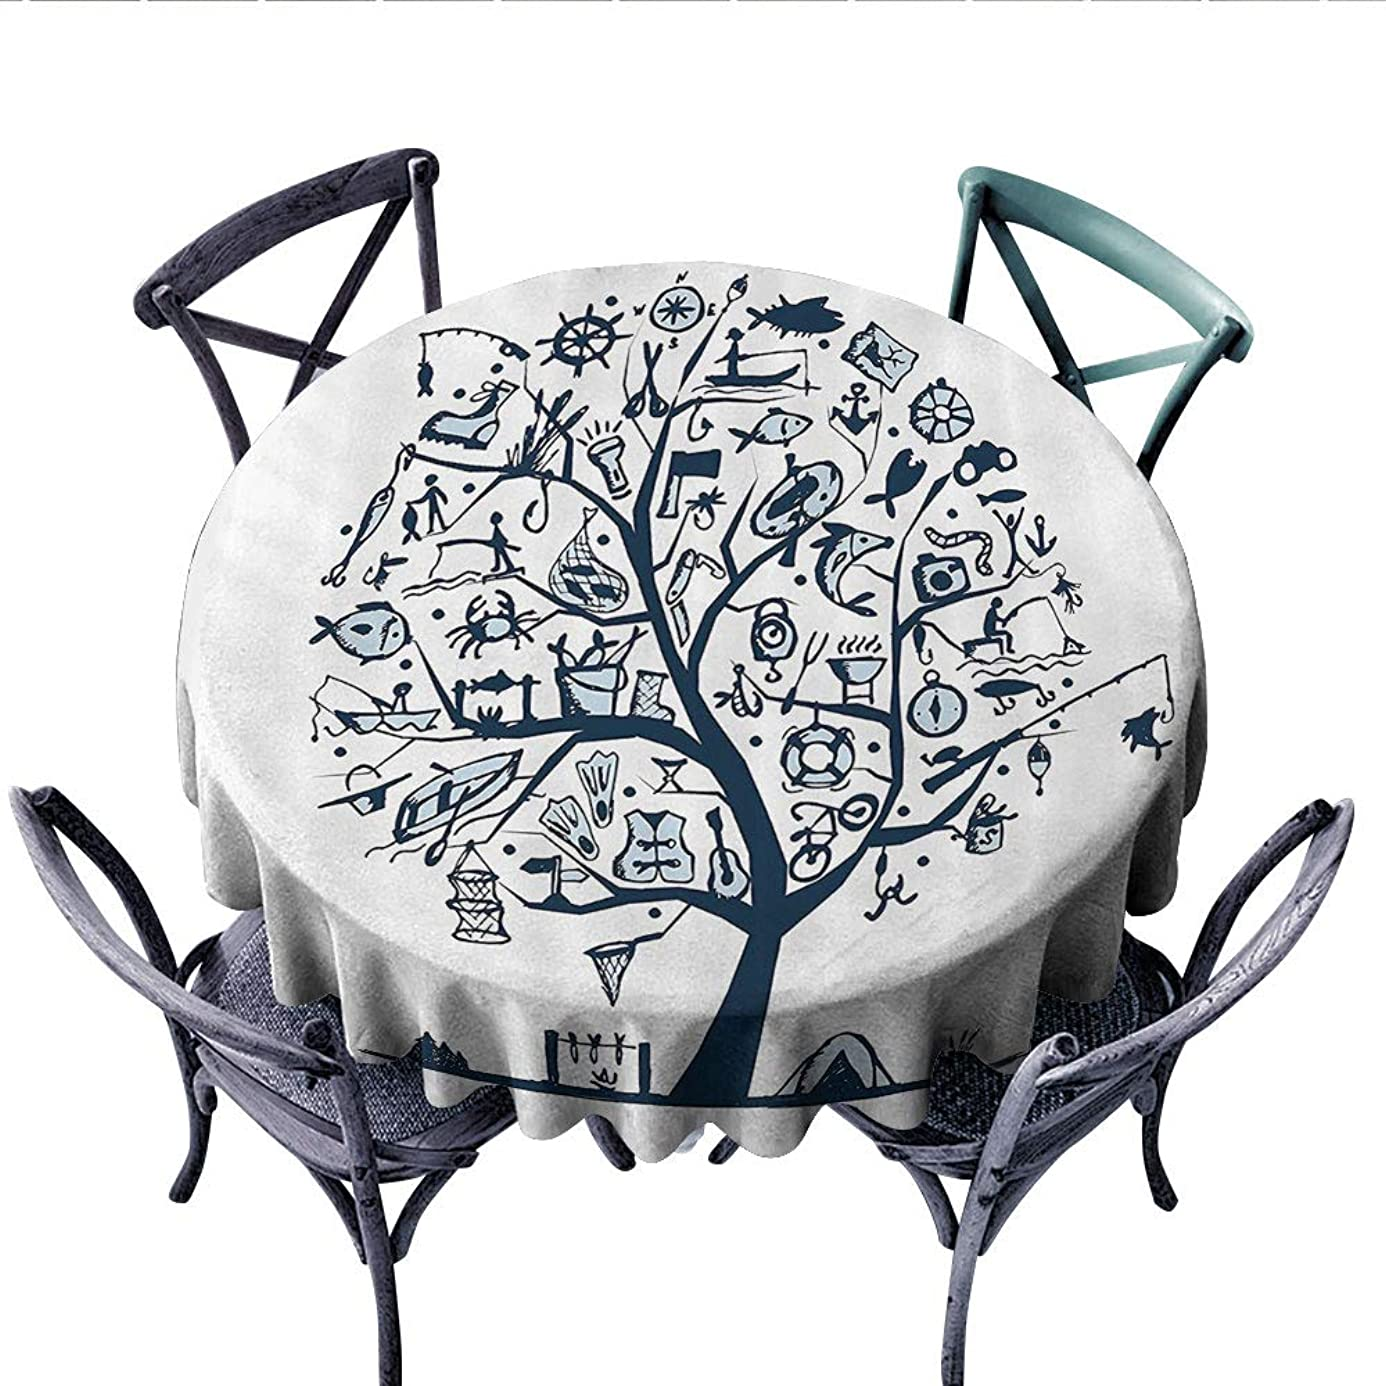 Fishing Decor Dinner Picnic Table Cloth Cute Tree of Life with Marine Objects Anchor Wind Rose Compass Reel Nature Round Wrinkle Resistant Tablecloth (Round, 70 Inch, Light Blue) fpt6060880